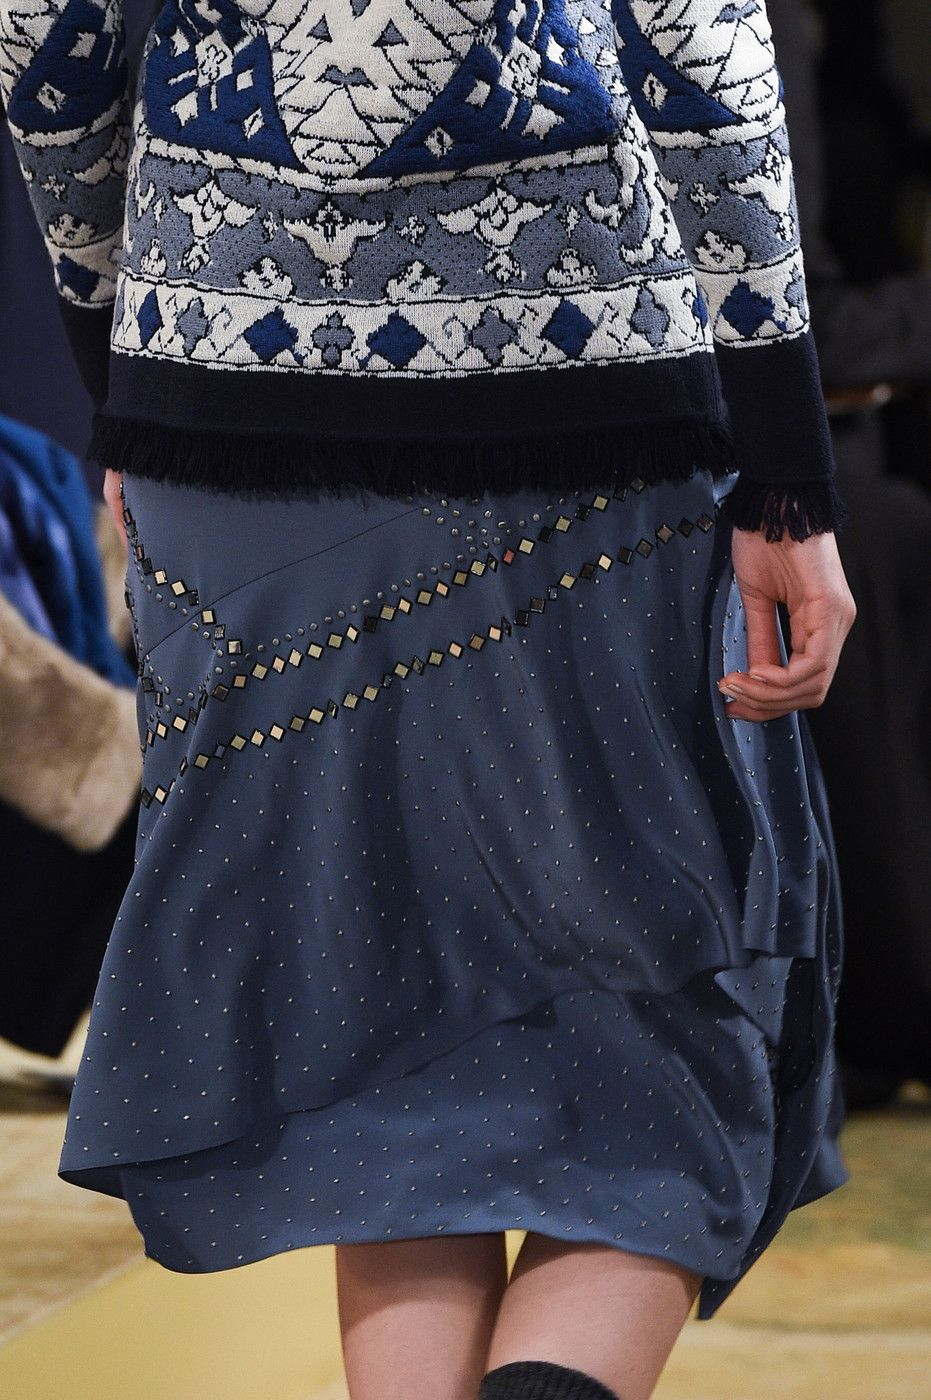 Tory Burch Fall 2015 Runway Pictures - StyleBistro